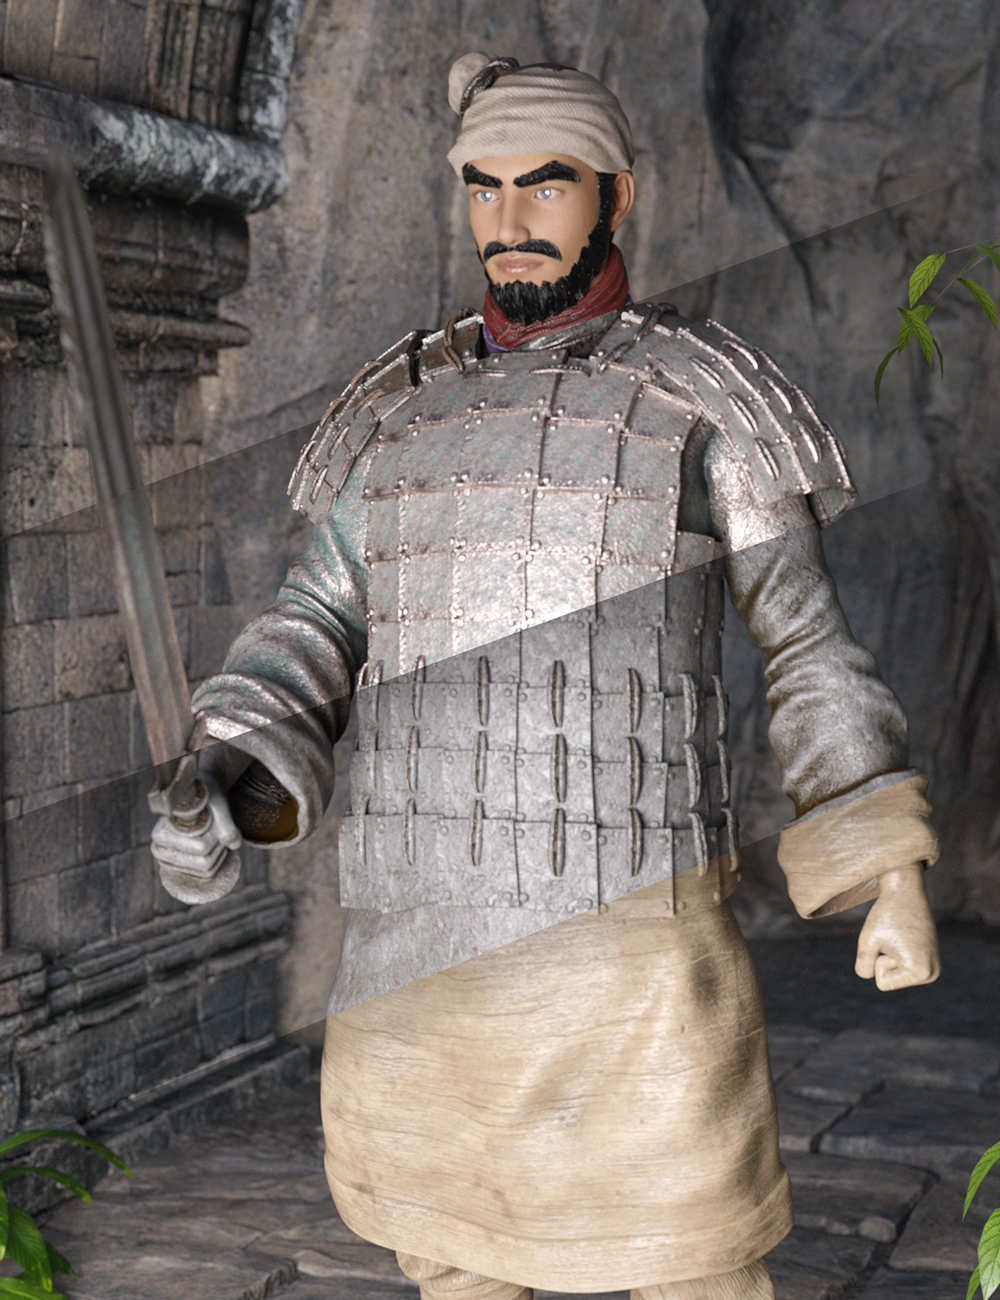 Texture and Weapon Pack for the Action Terracotta Warrior by: Jerry Jang, 3D Models by Daz 3D